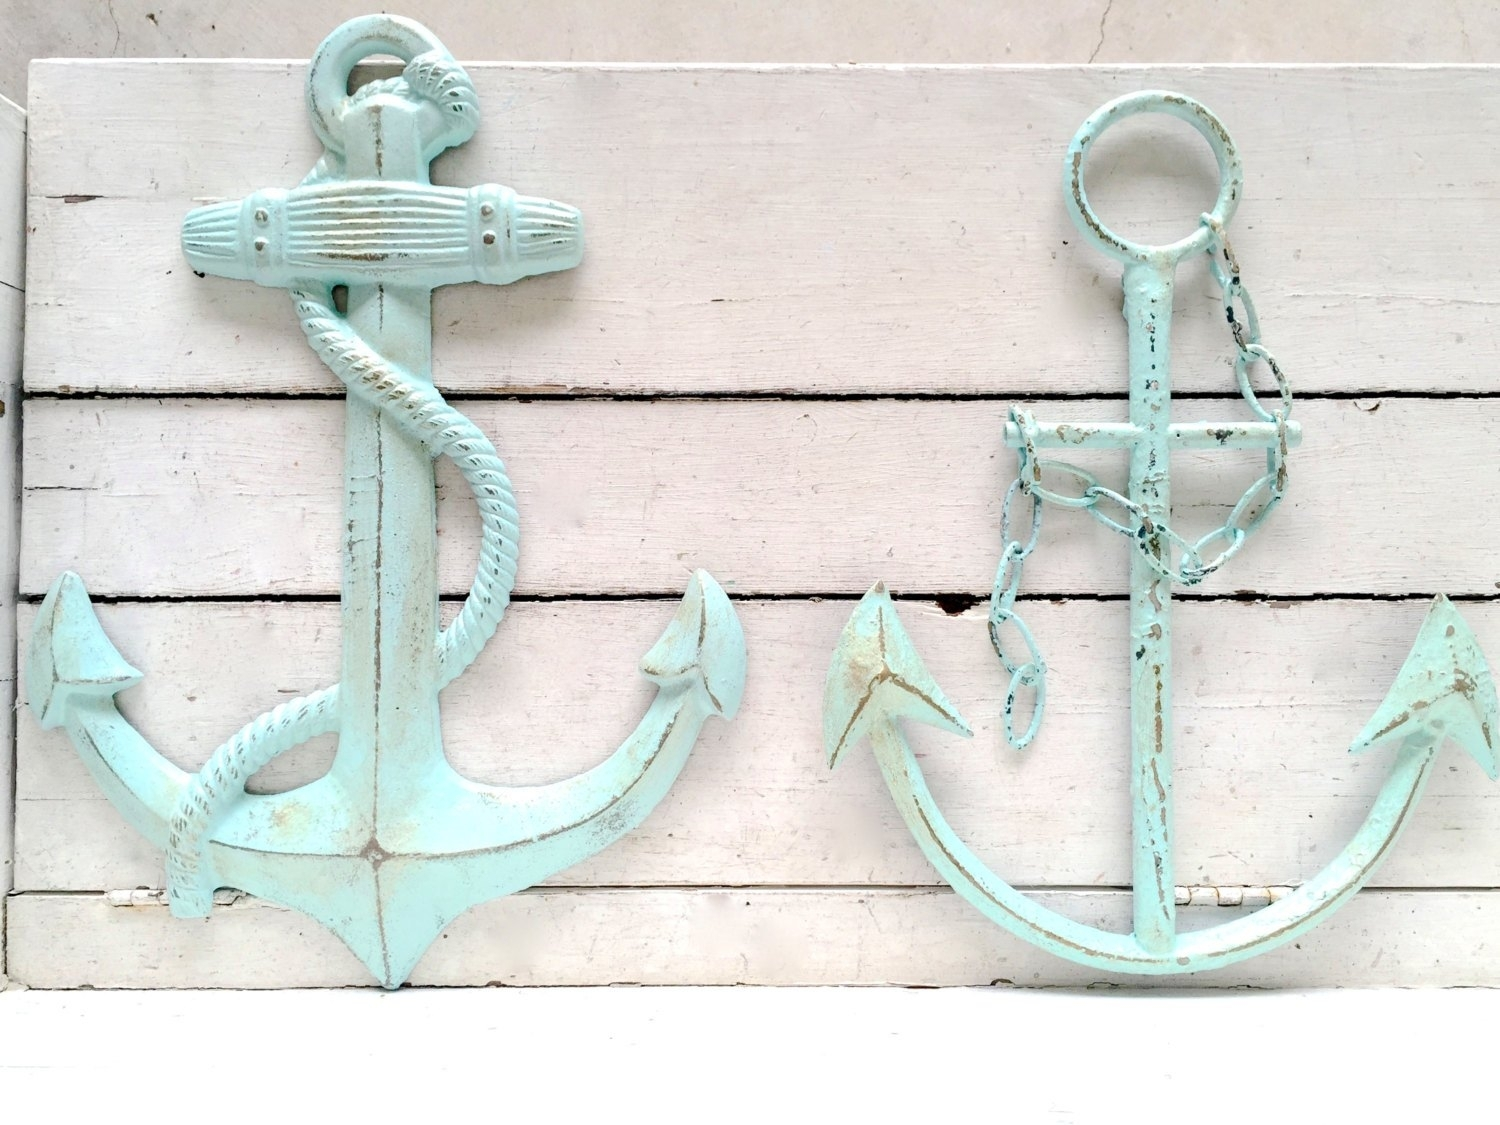 Anchor Decor Nautical Decor Anchor Wall Art Nautical, Nautical Decor inside Anchor Wall Art (Image 4 of 20)